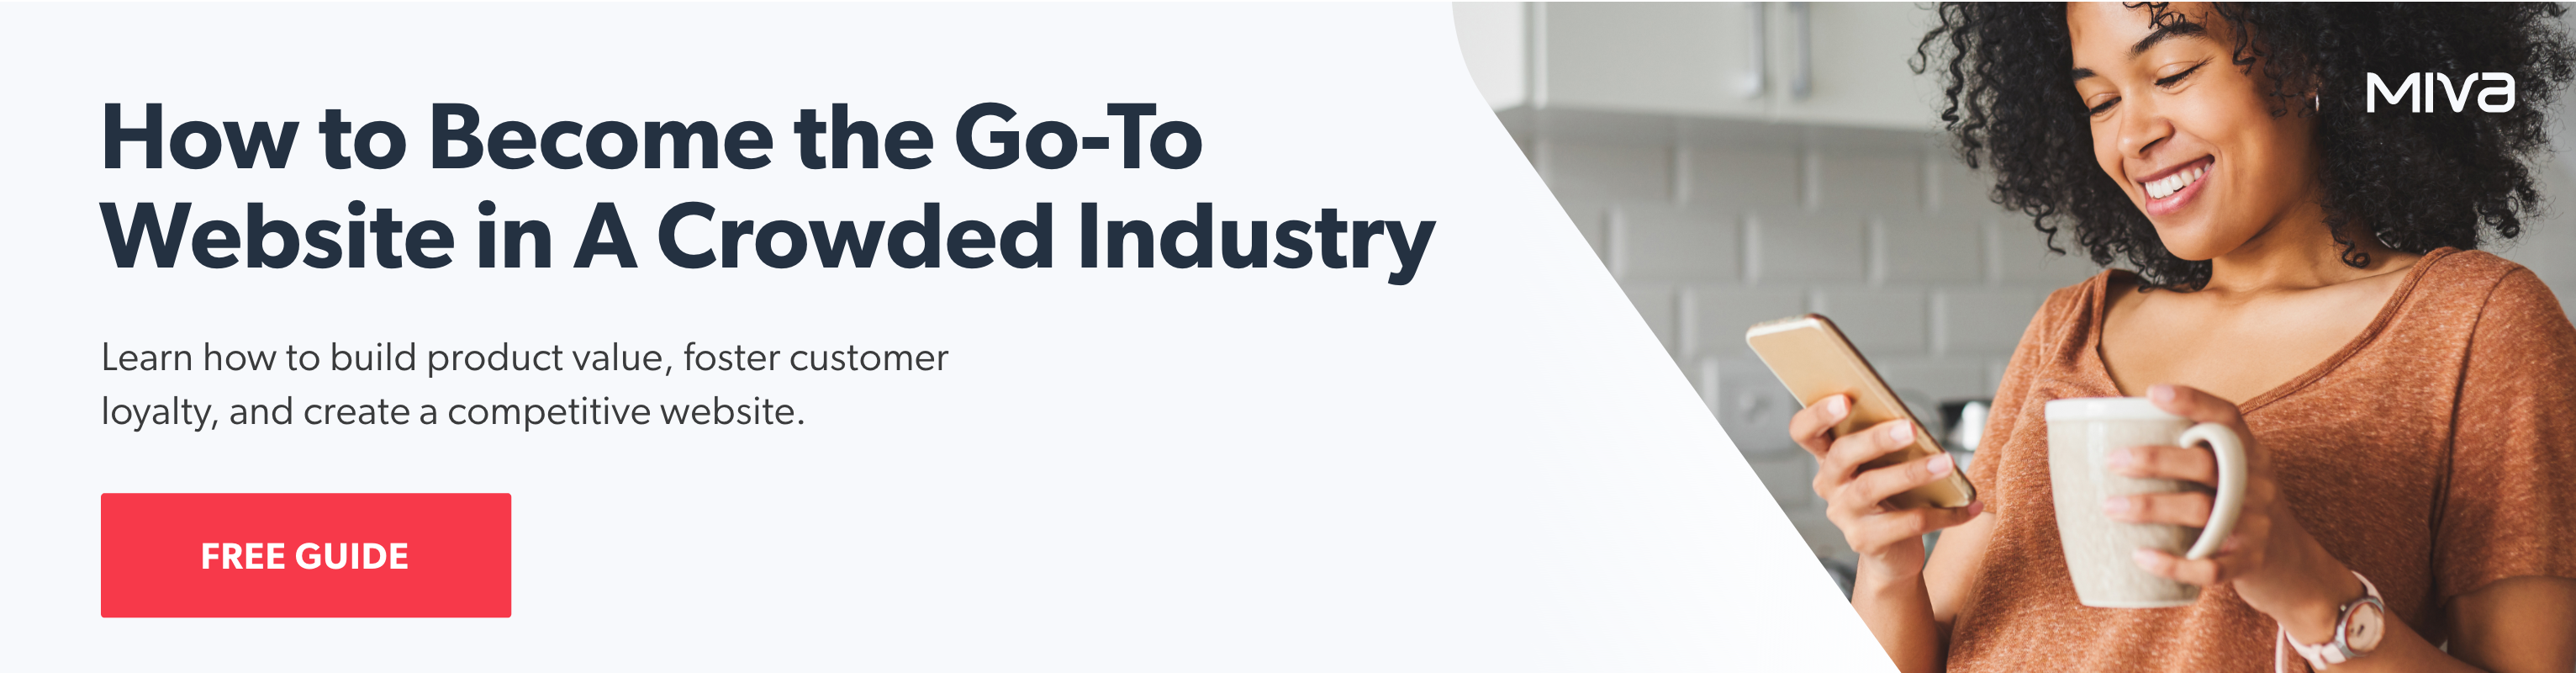 Free Guide | How to Become the Go-To Website in a Crowded Industry